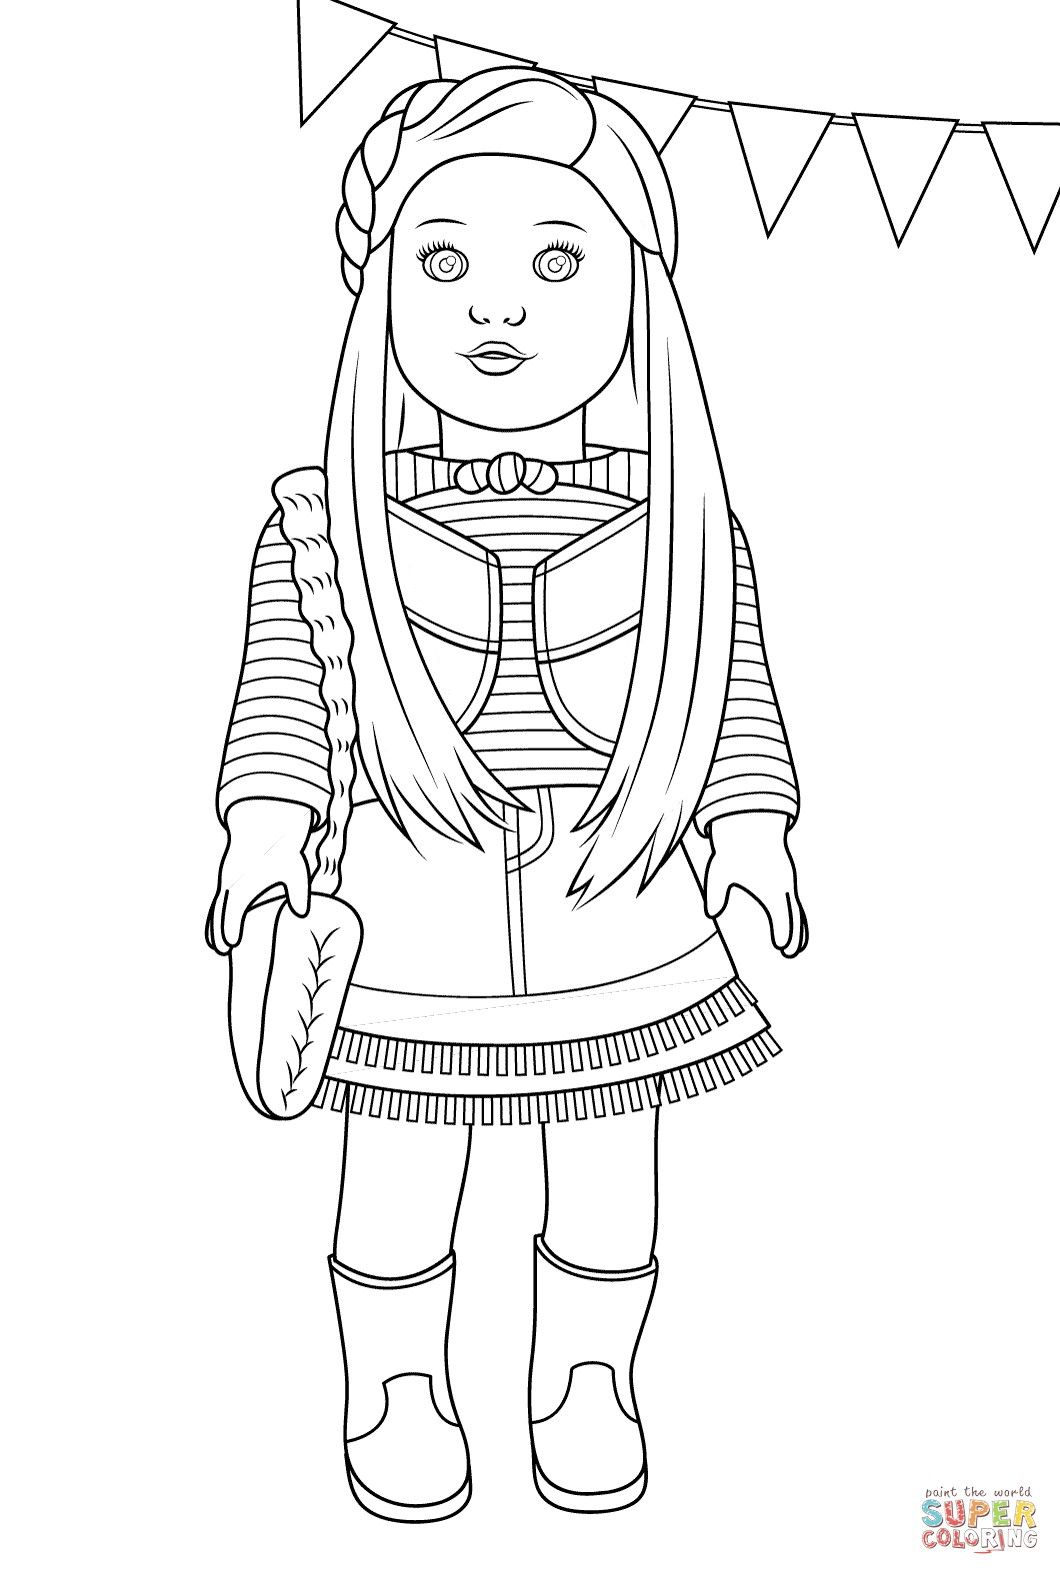 American Girl Coloring Pages Free From The Thousand Photographs